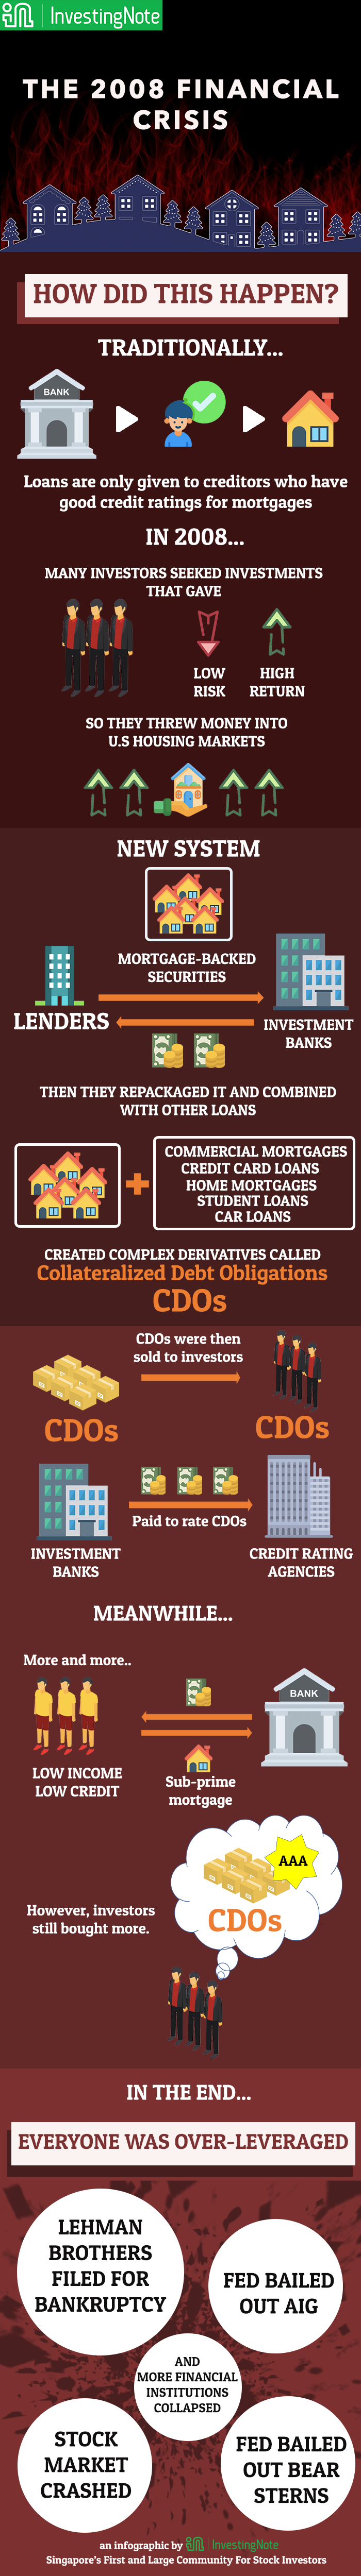 2008 Financial Crisis Infographic by InvestingNote